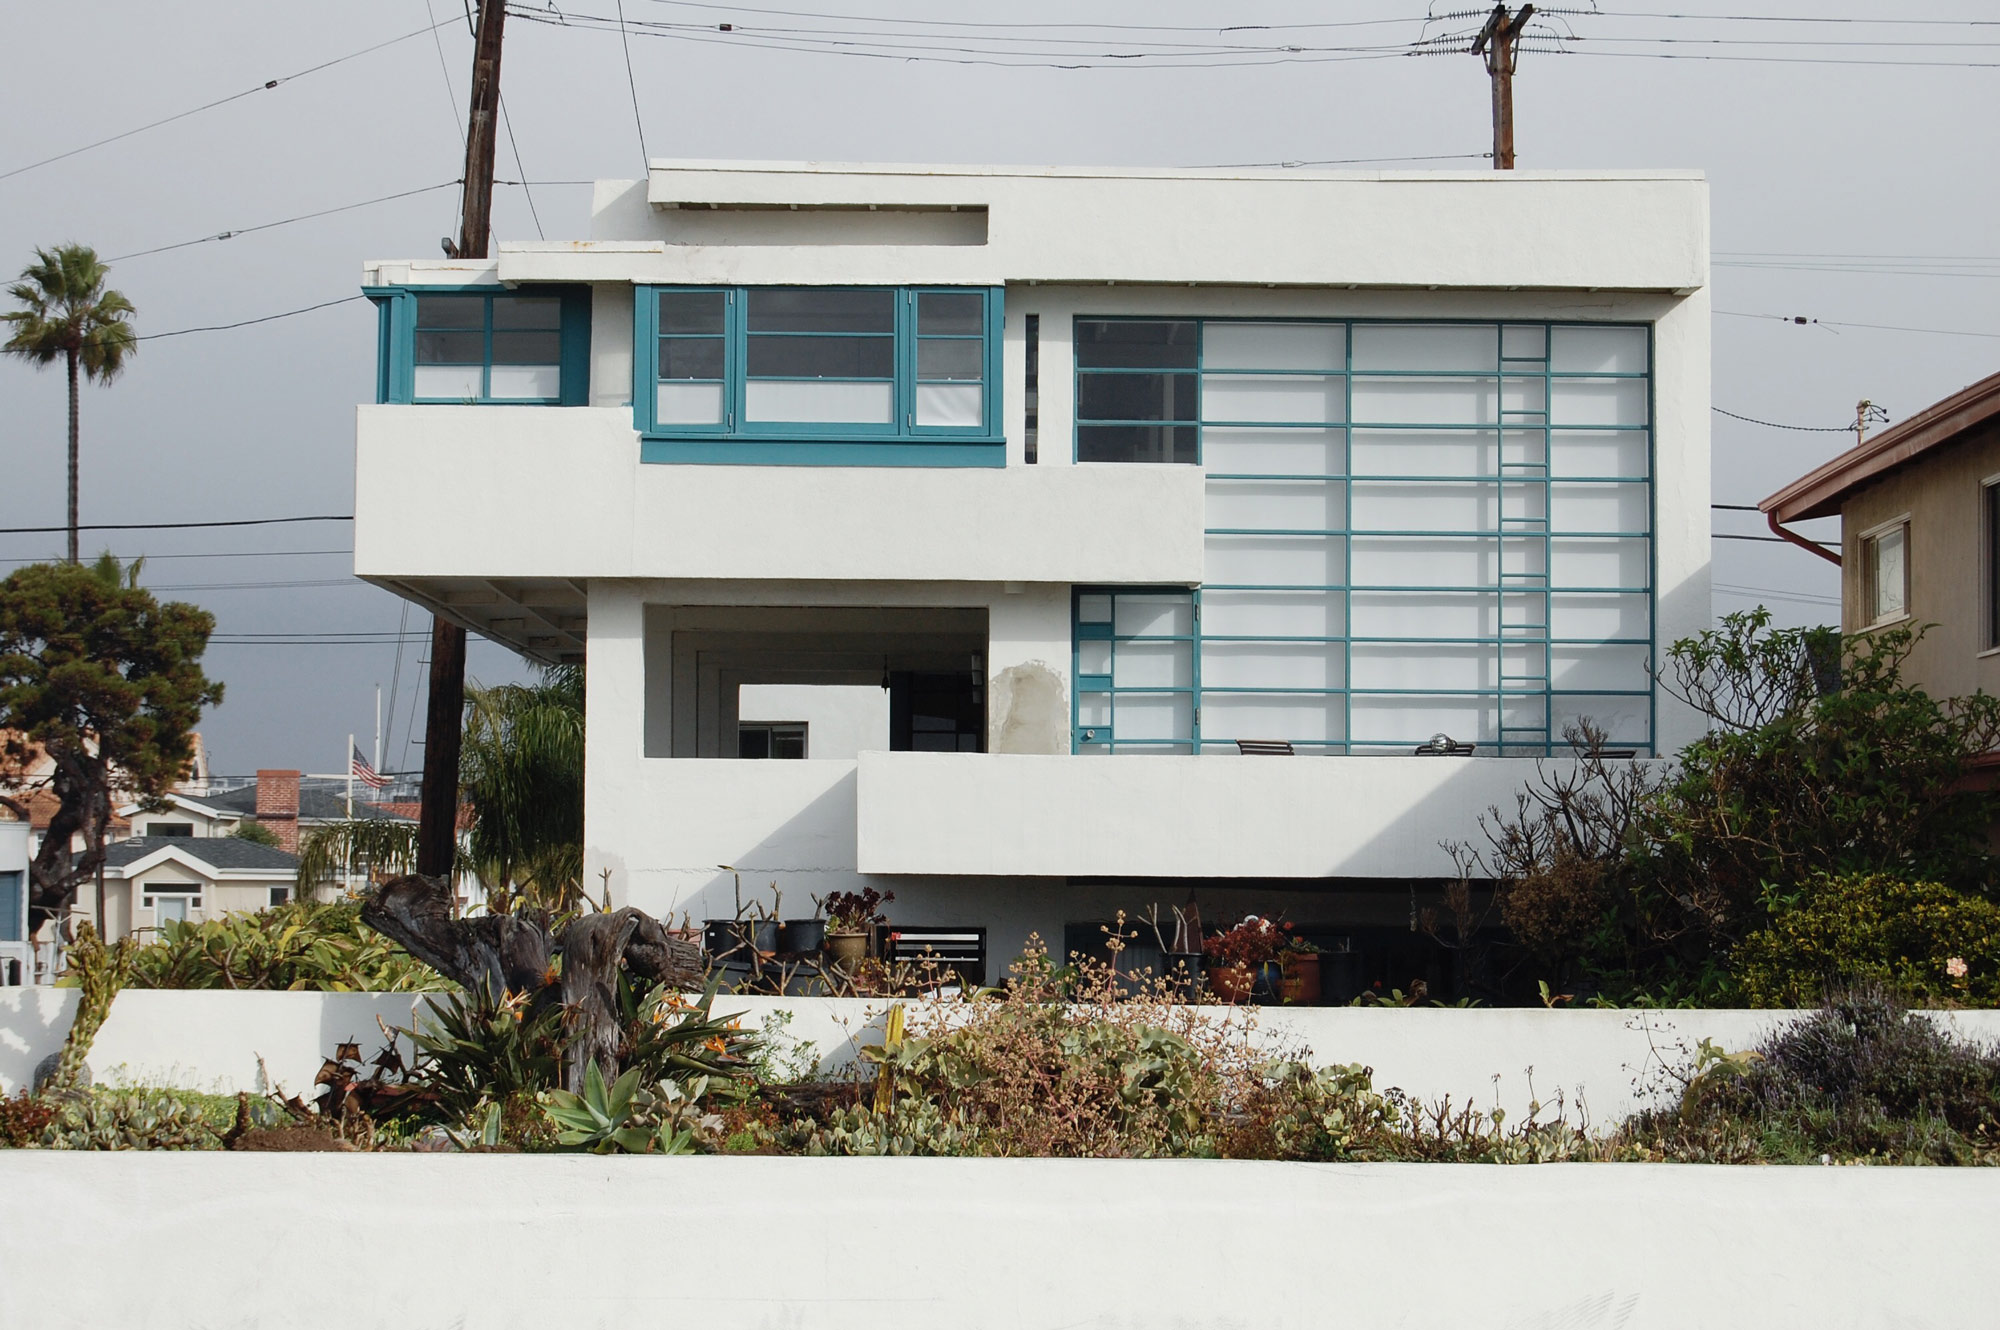 Lovell Beach House Rudolph Schindler Newport Beach Los Angeles